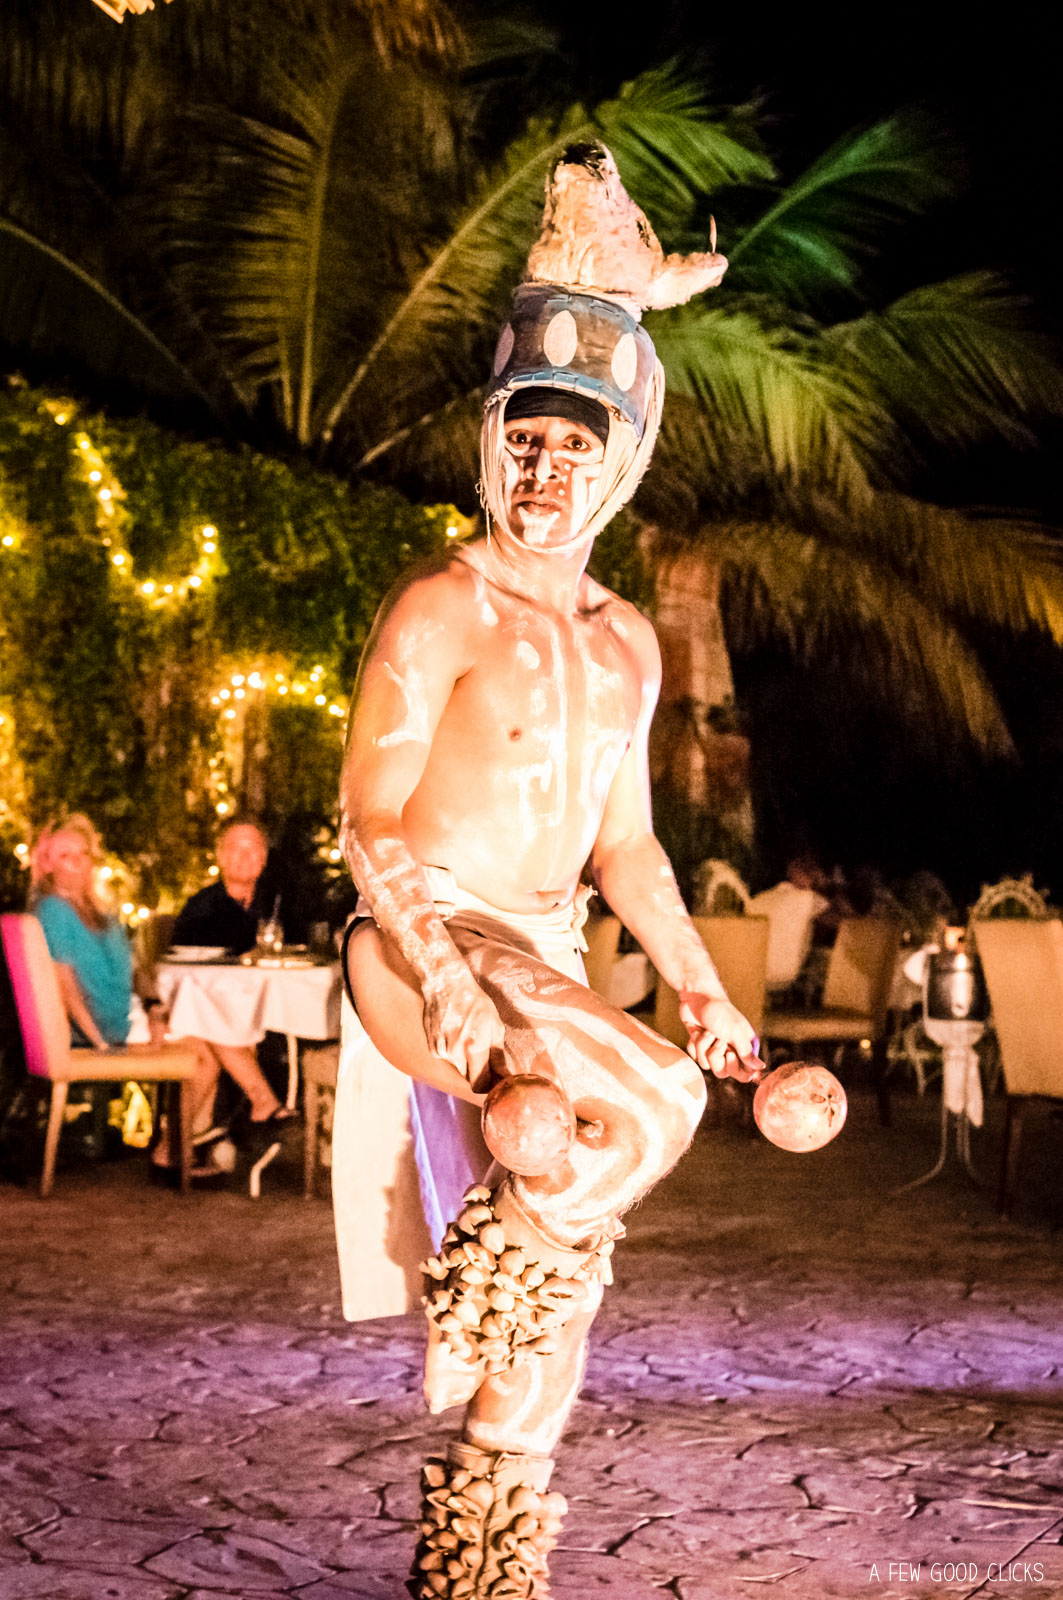 The Mayan King during the performance at La Habichuela Sunset, Cancun.